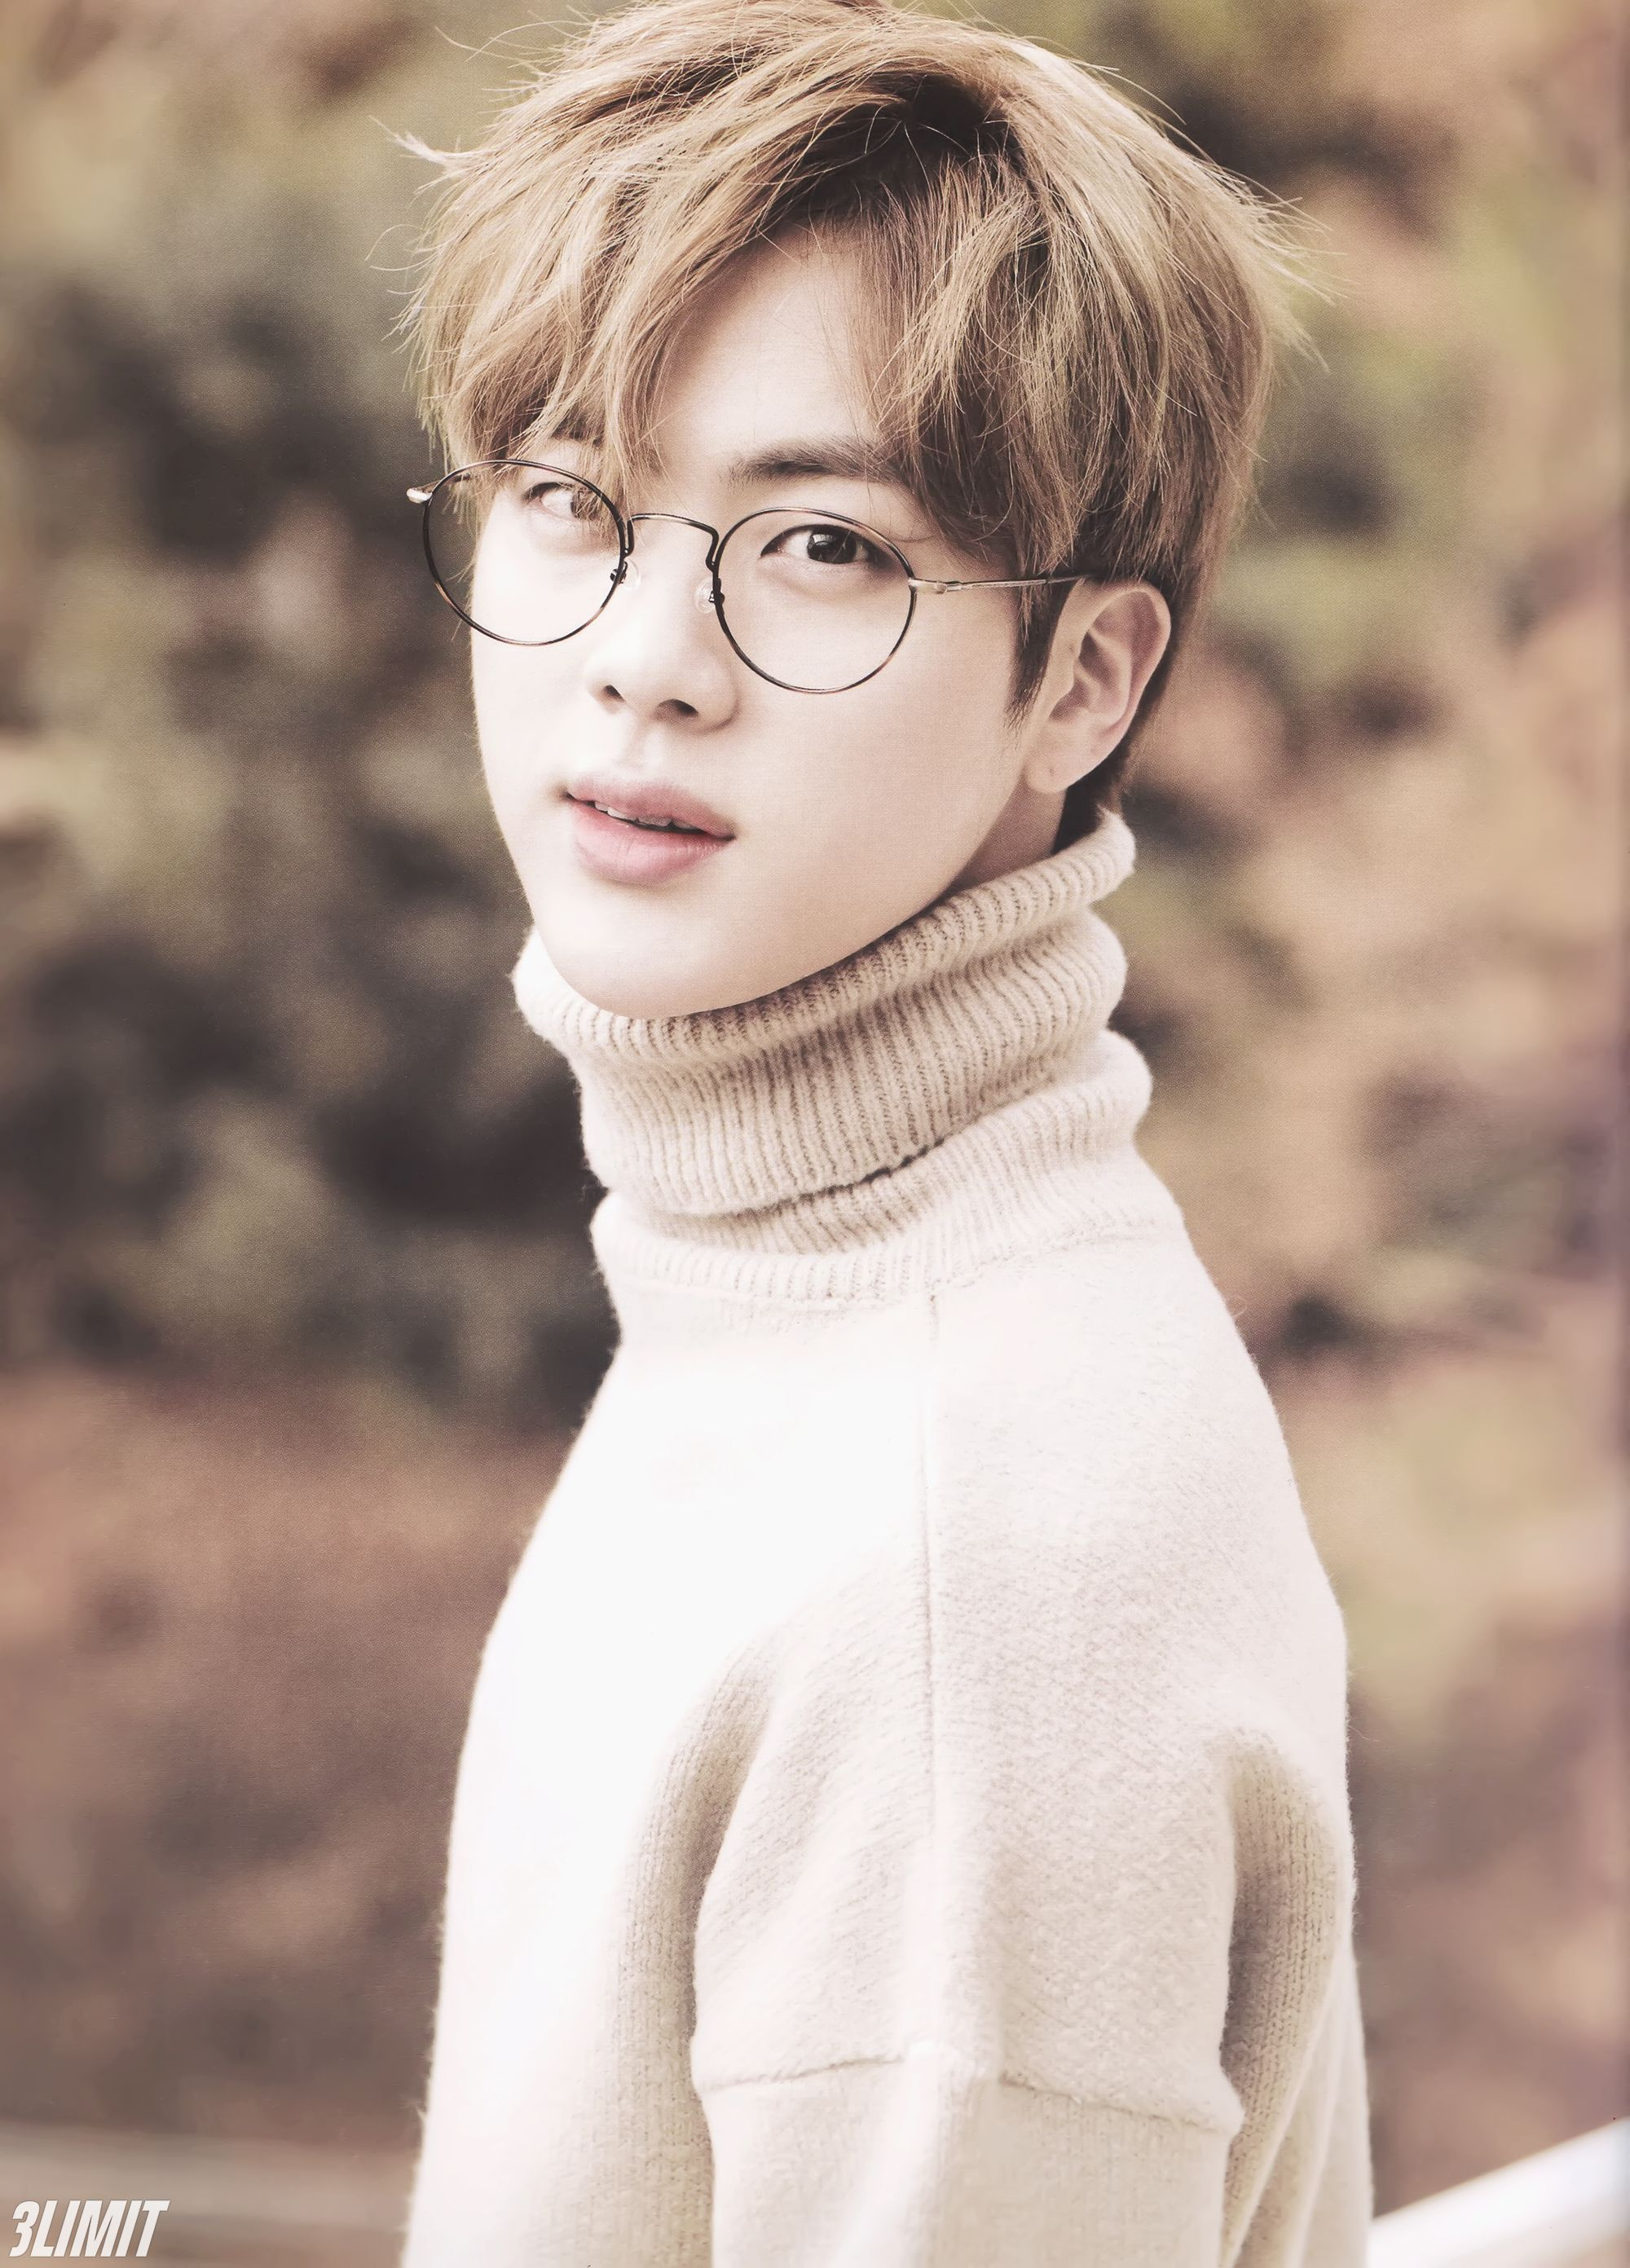 He Looks Absolutely Cute And Handsome At The Same Time Bts Wallpaper Jimin